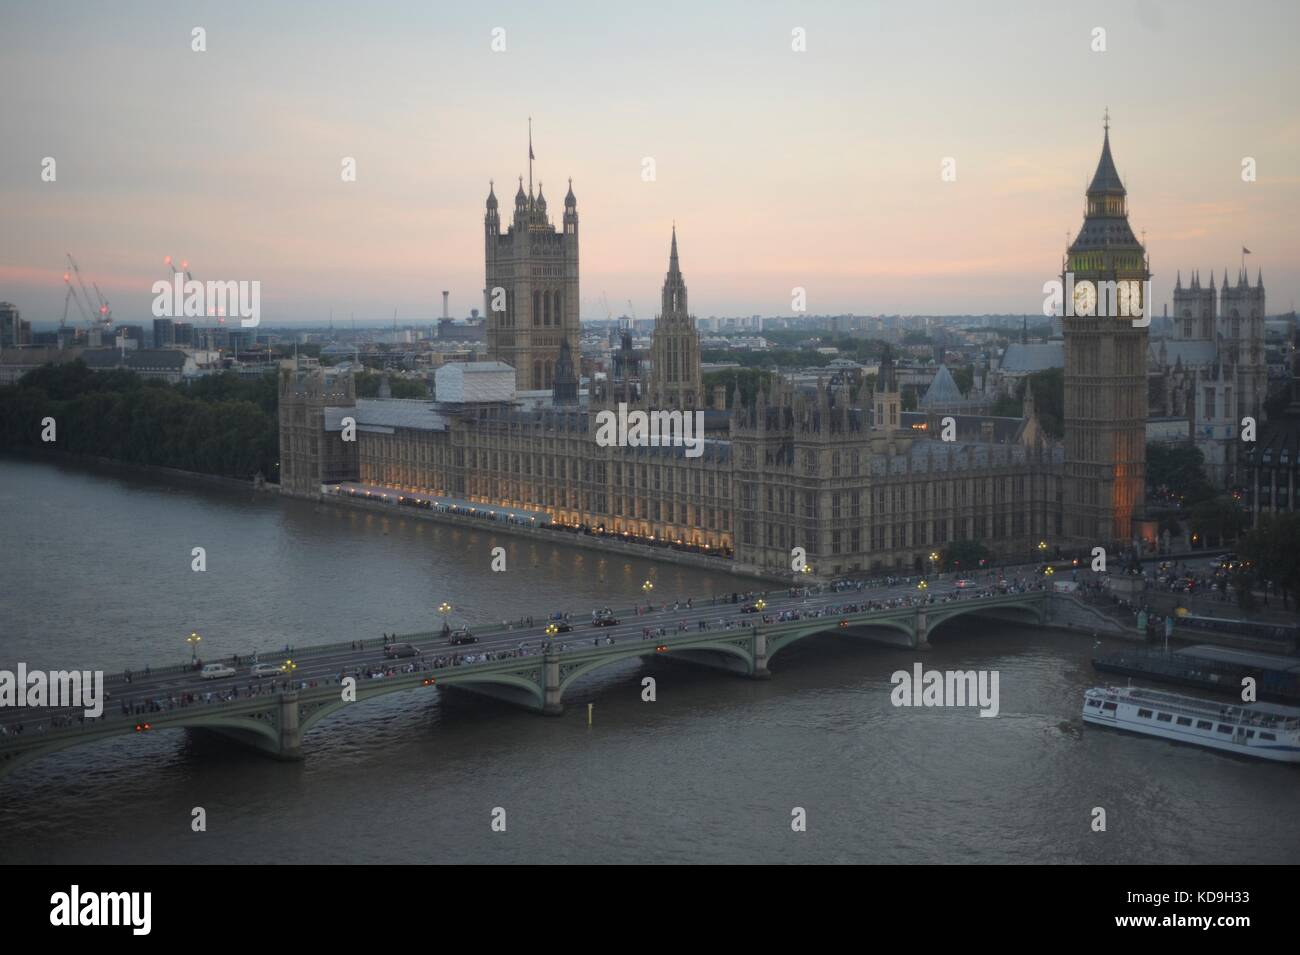 Aerial views of London - Stock Image